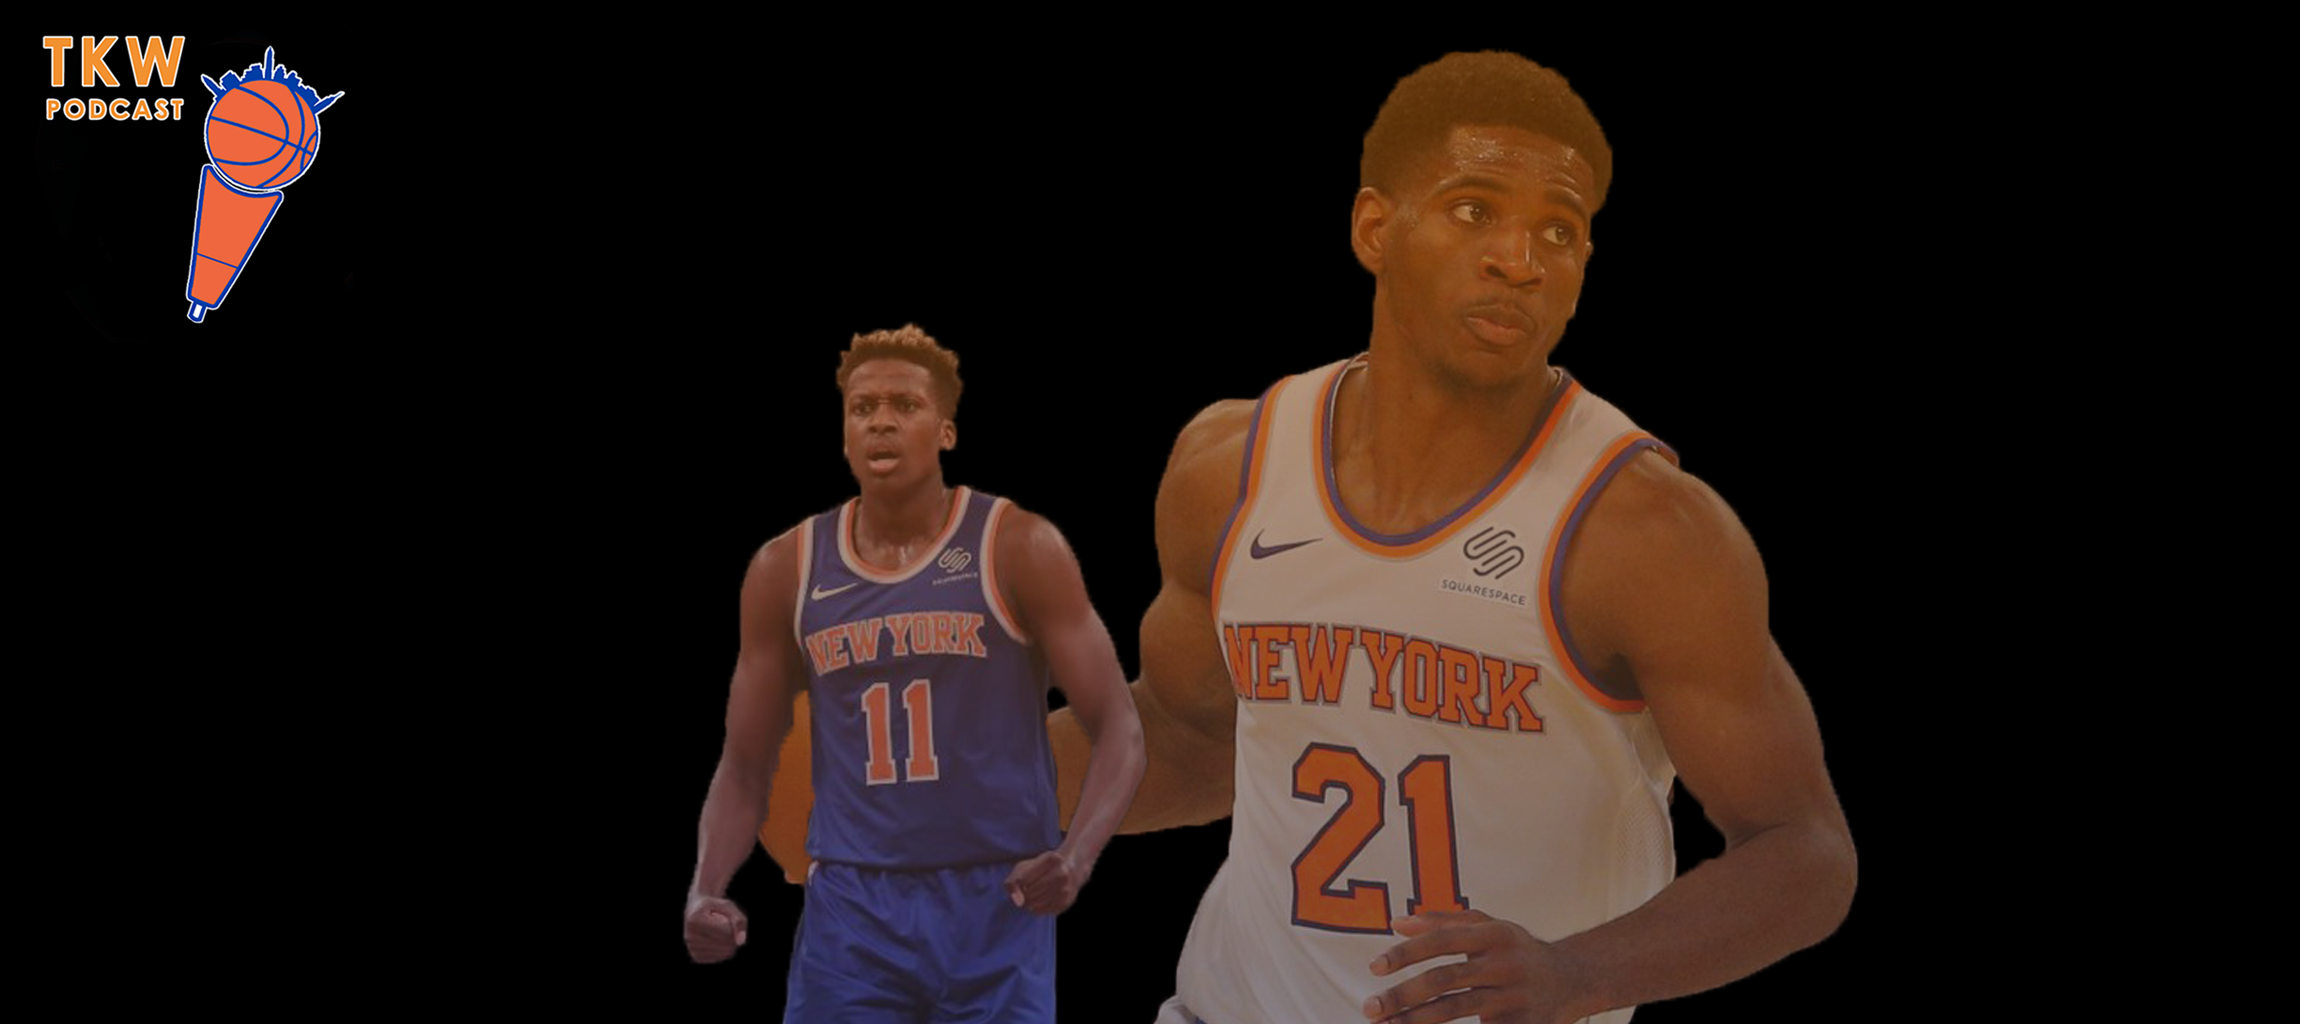 TKW Podcast: Frank Ntilikina in the Long Term & Is Tim Hardaway Good?